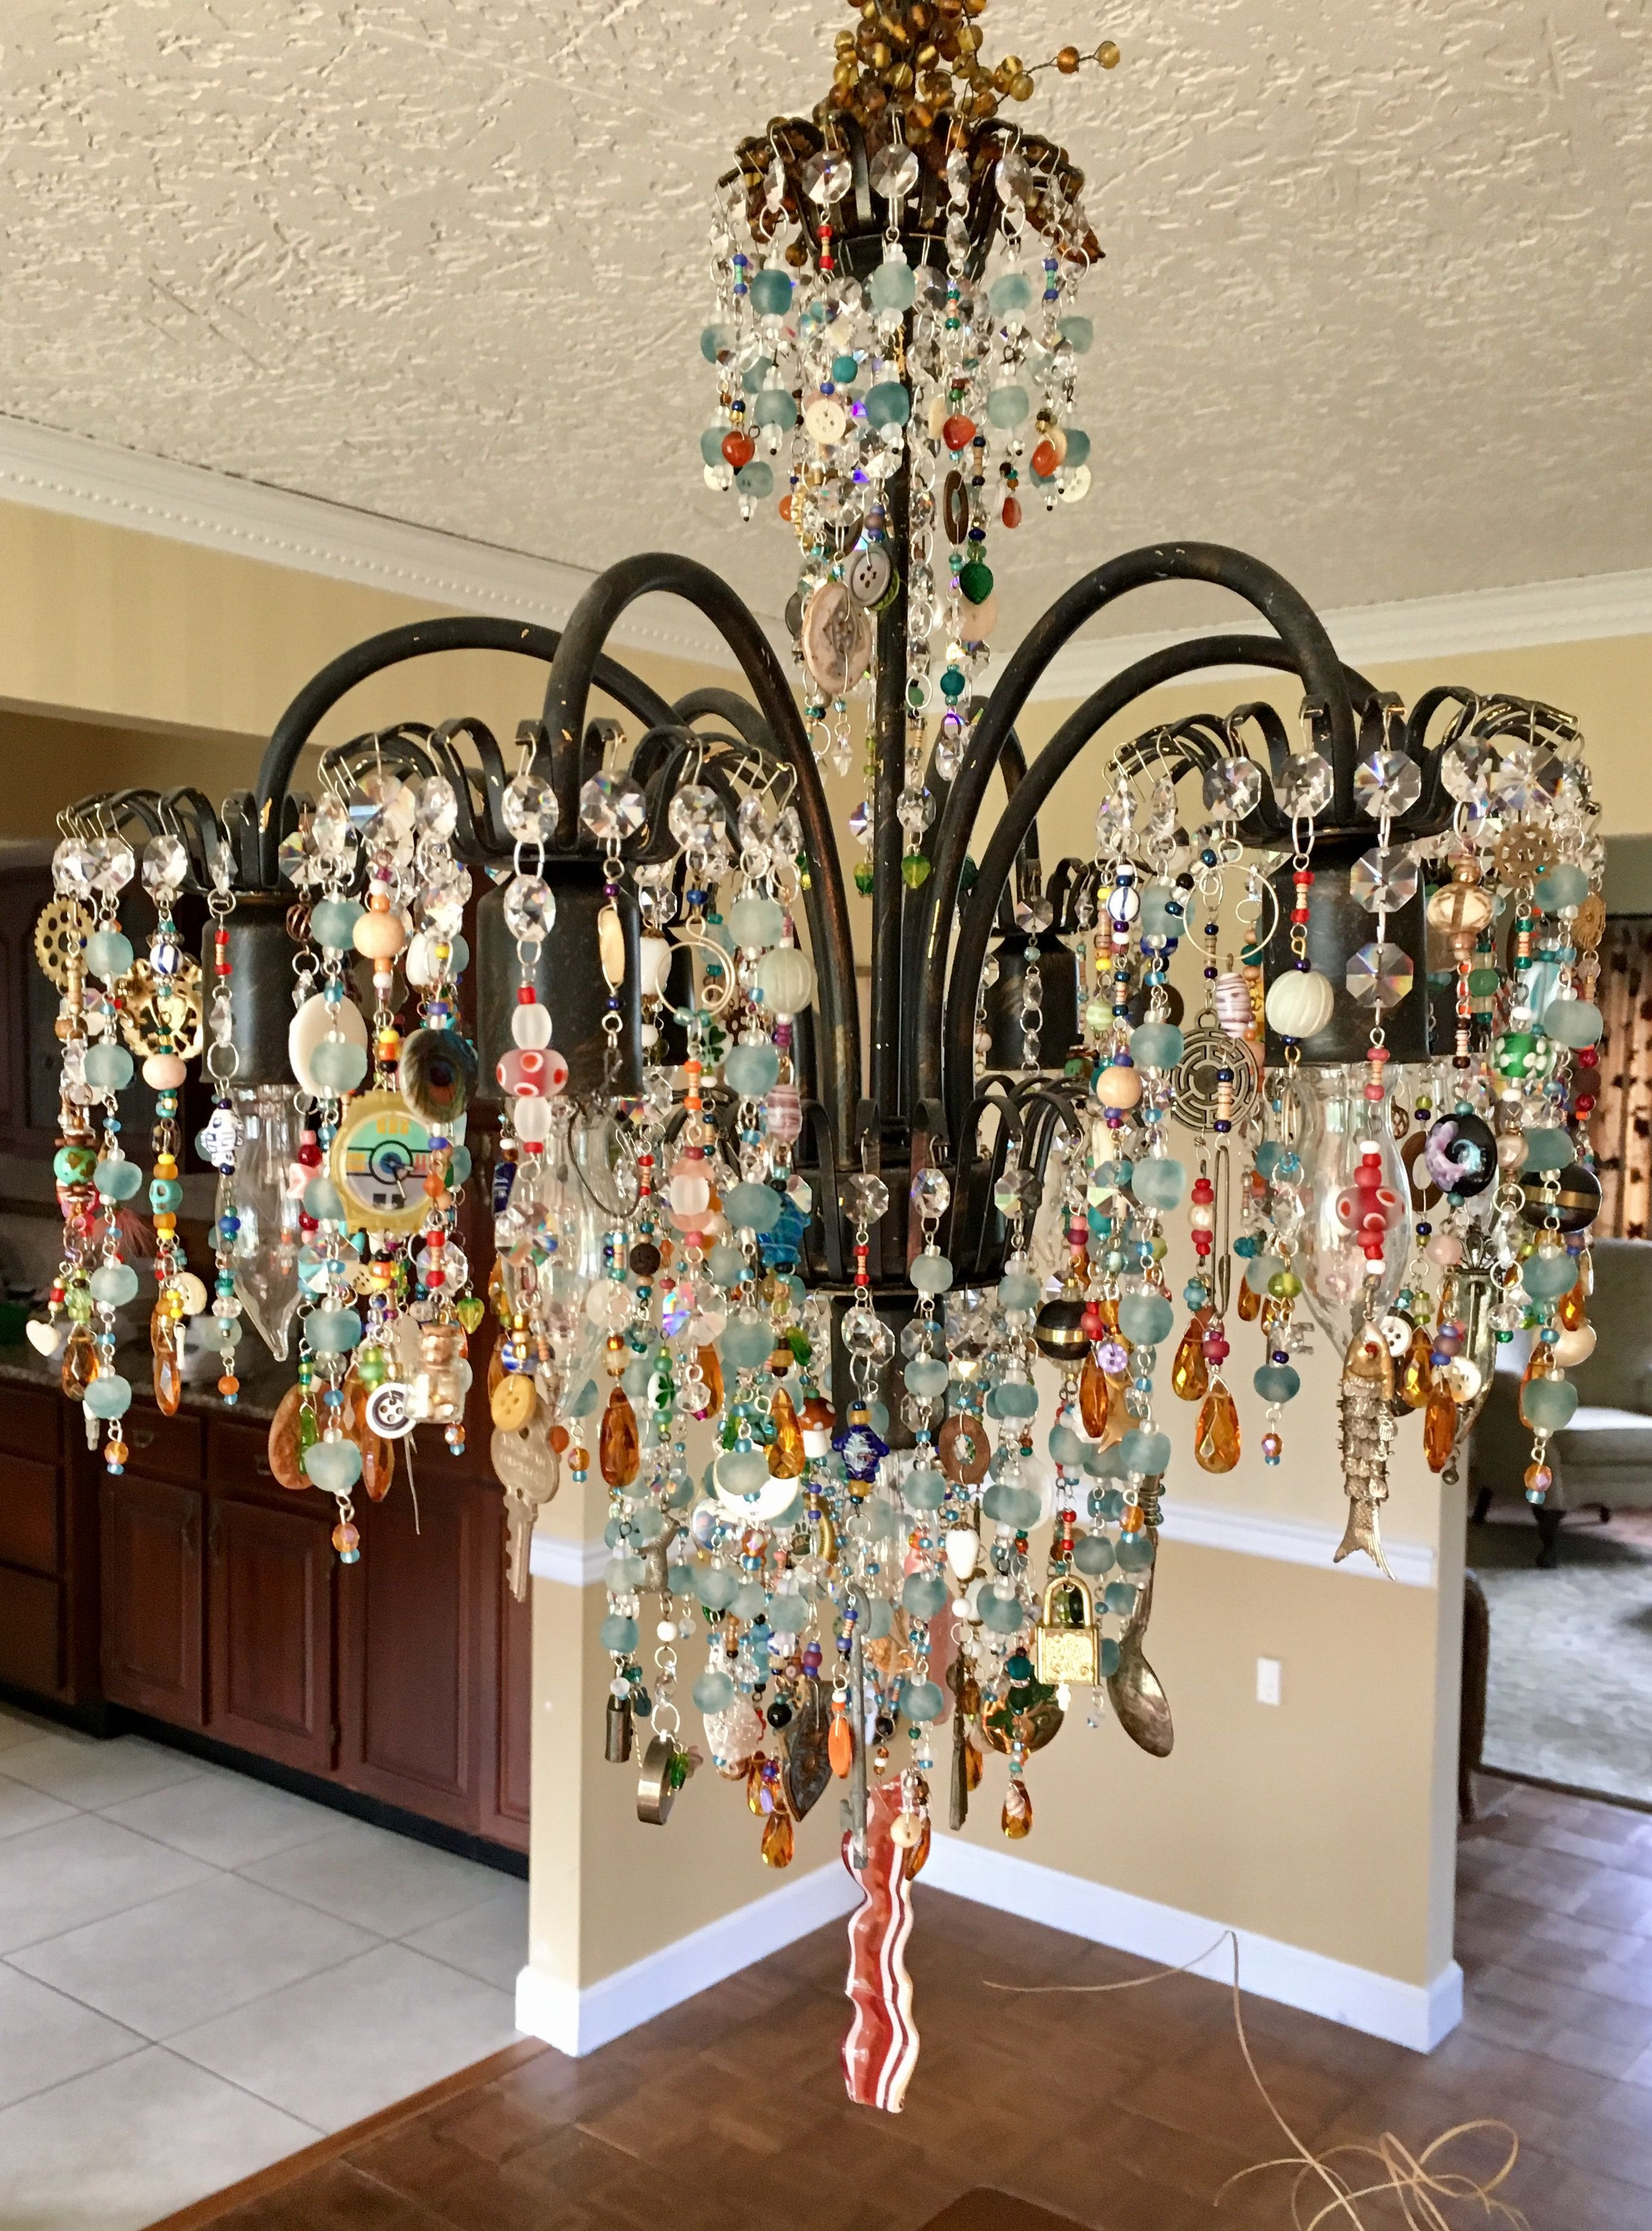 Upcycled Chandelier With Found Objects Shells Watches Fishing Lures Crystals Stones